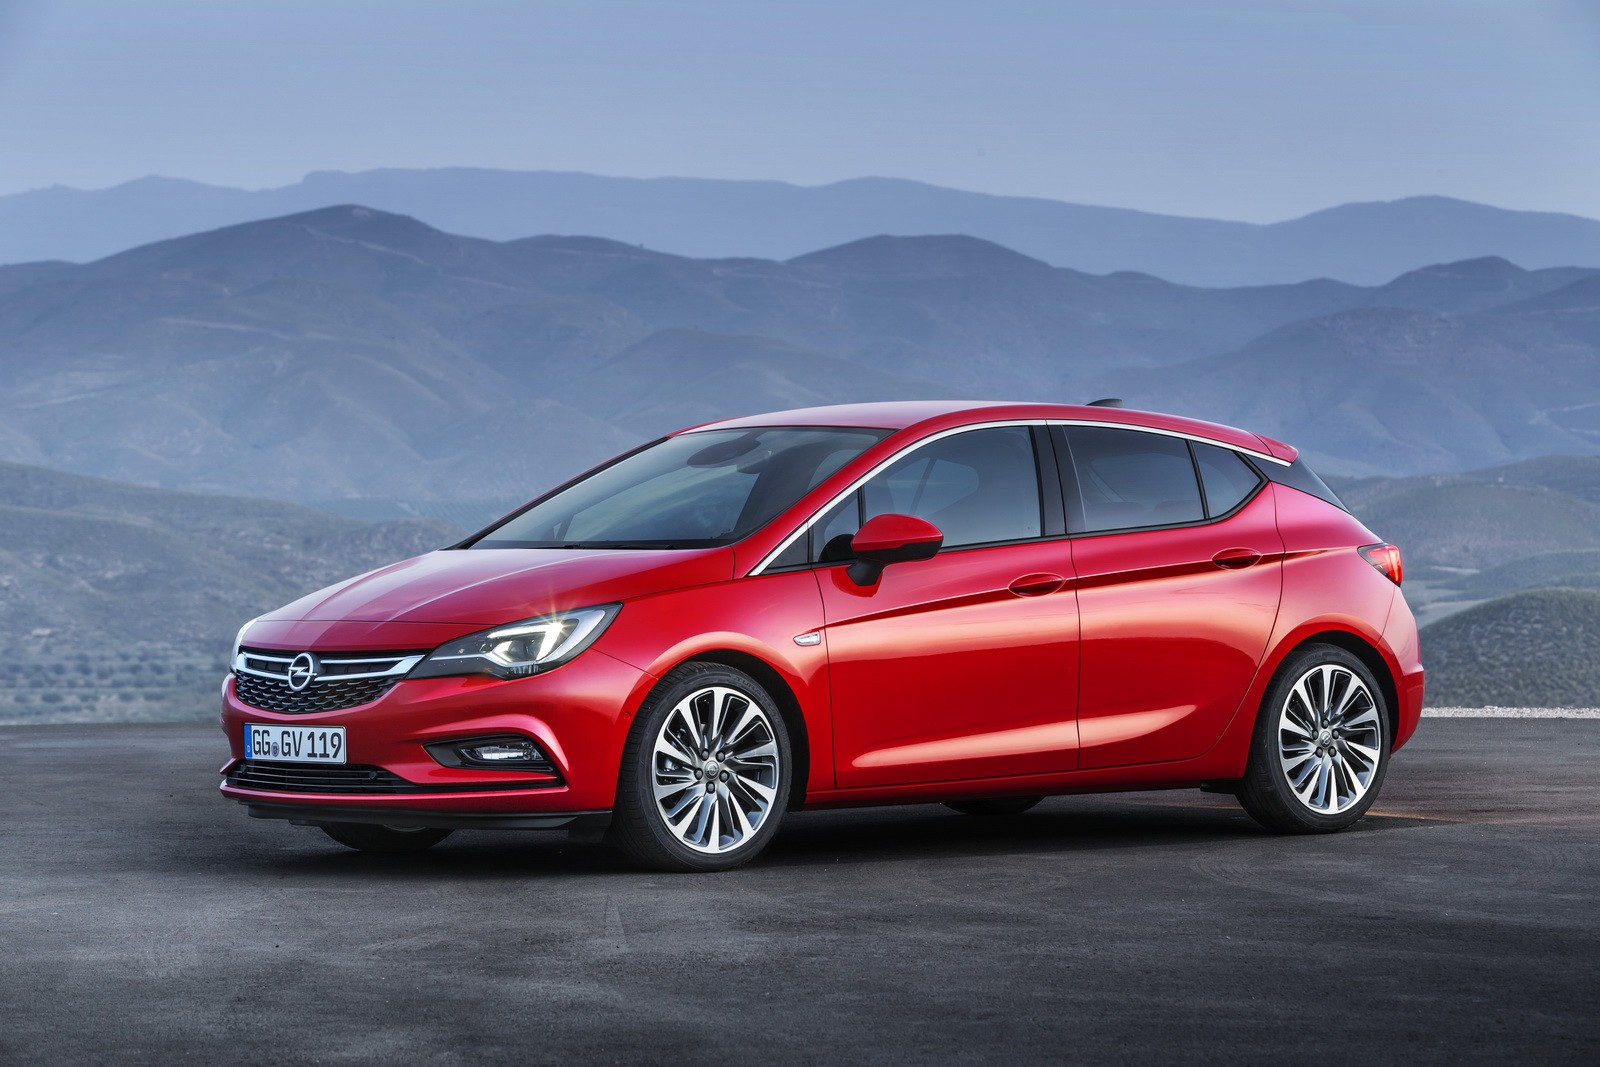 2017 Opel Astra Opc - news, reviews, msrp, ratings with amazing images